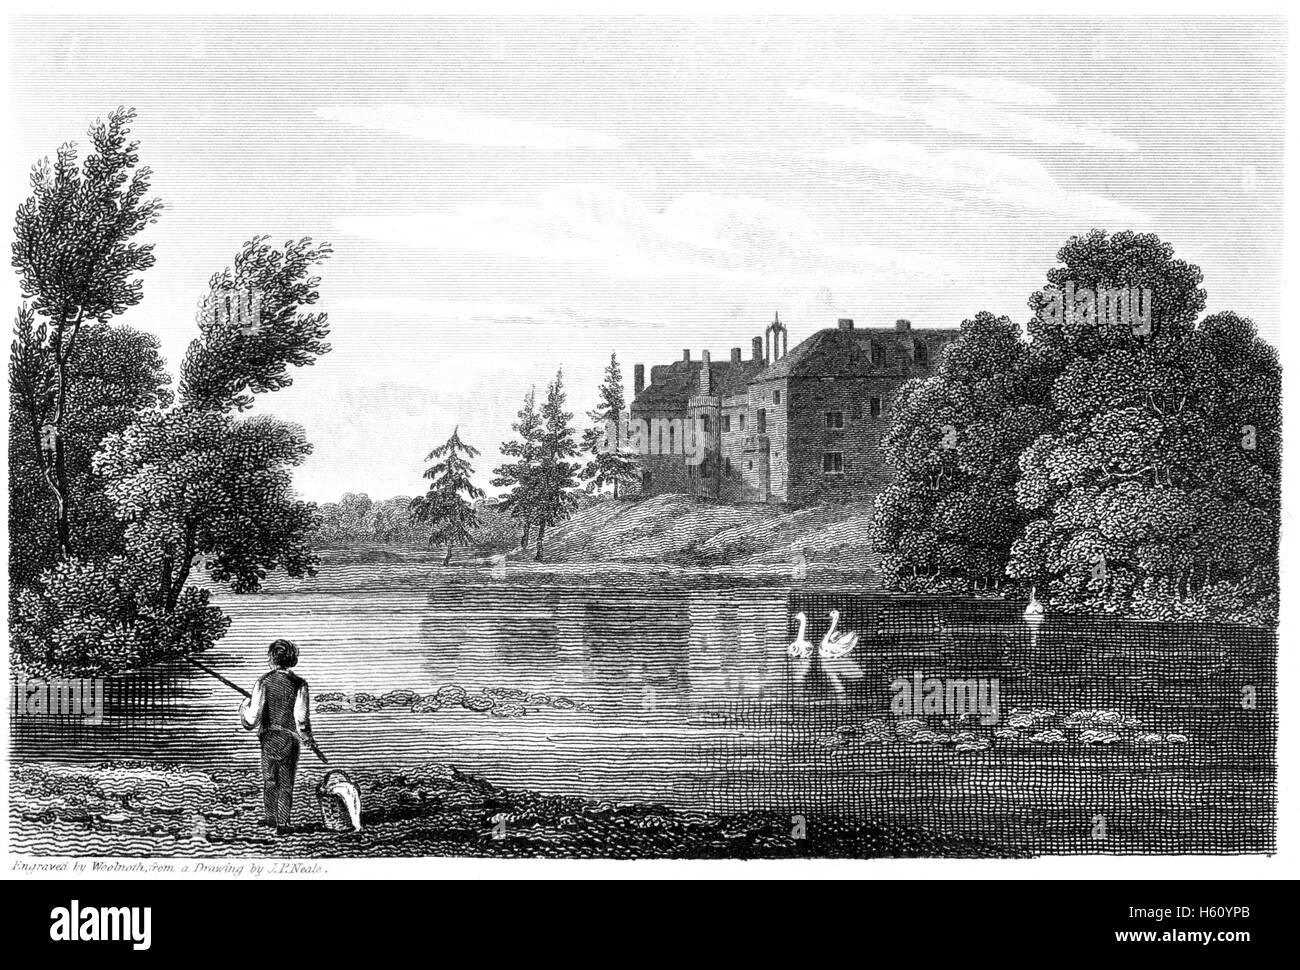 Engraving of Hartlebury Castle, Worcestershire scanned at high resolution from a book printed in 1812. Believed - Stock Image